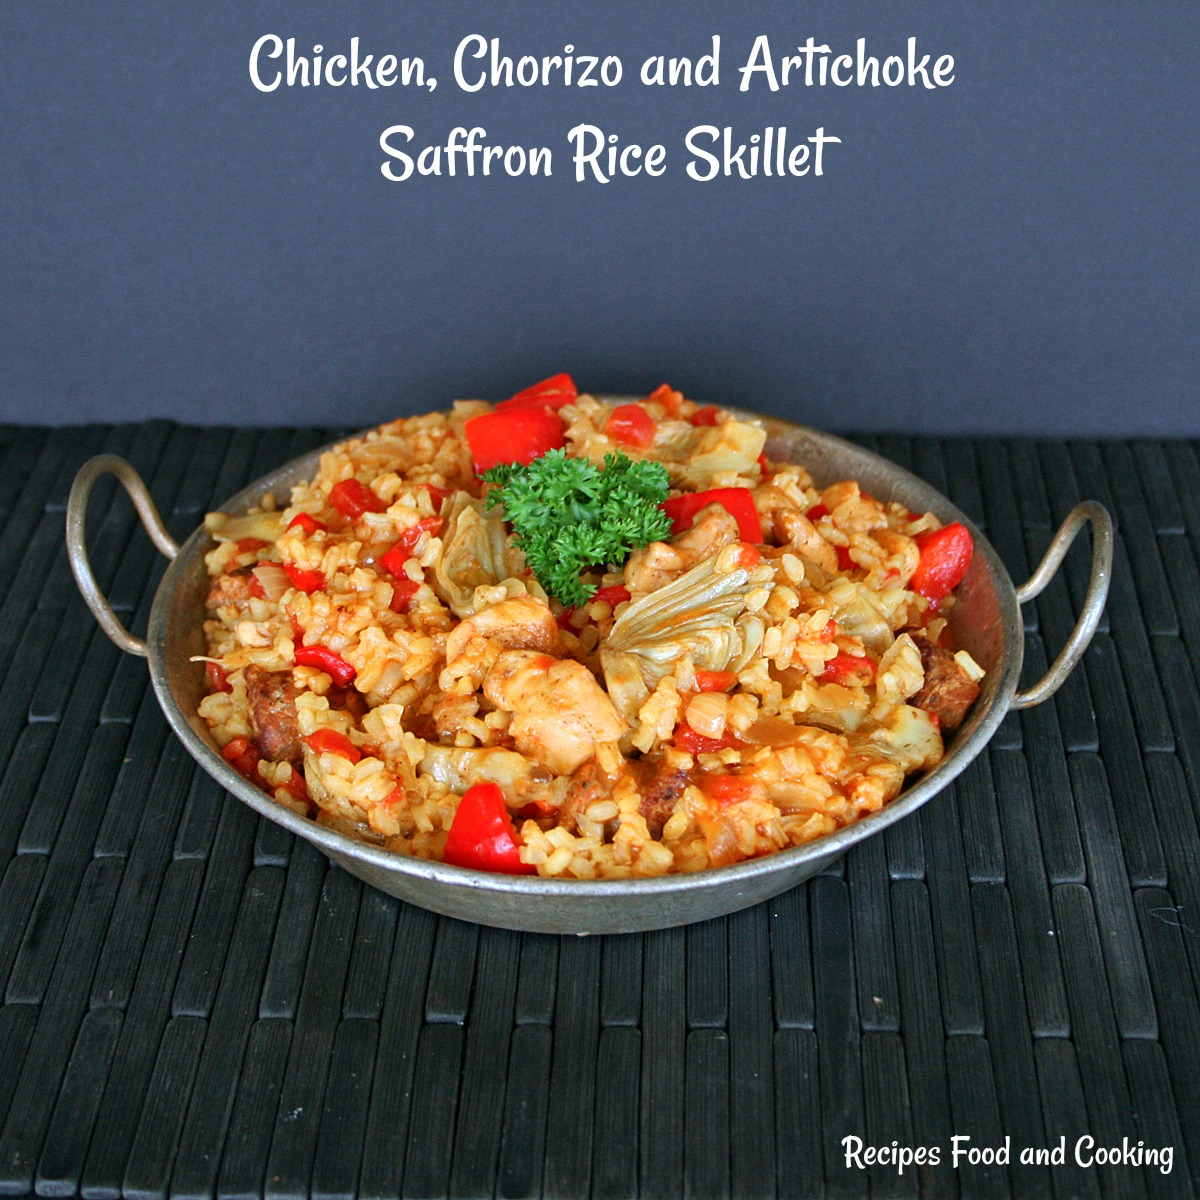 Chicken, Chorizo and Artichoke Saffron Rice Skillet